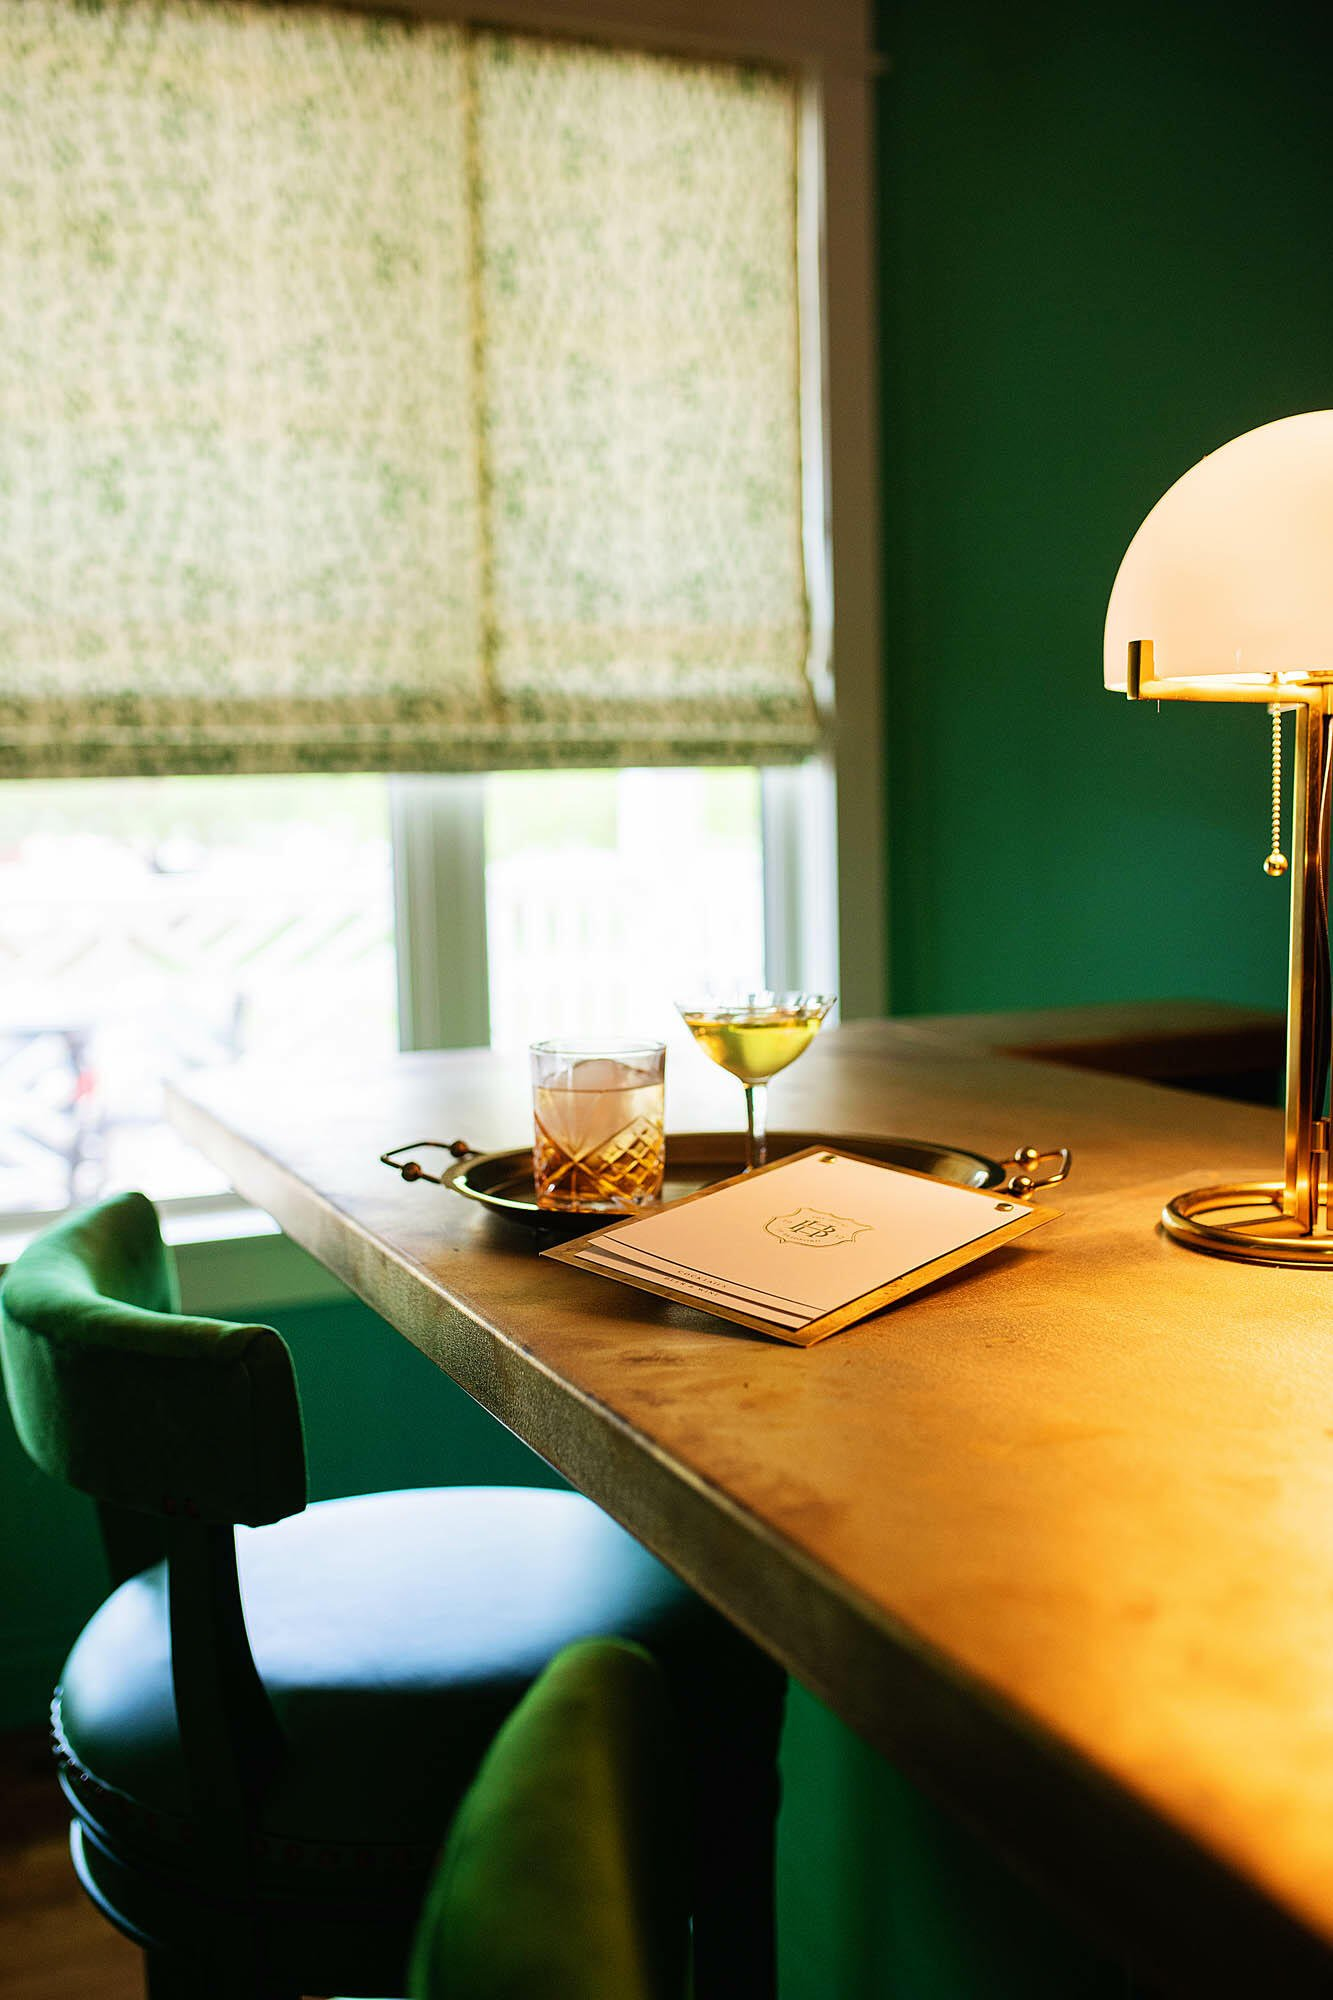 green chair at table with whiskey glass